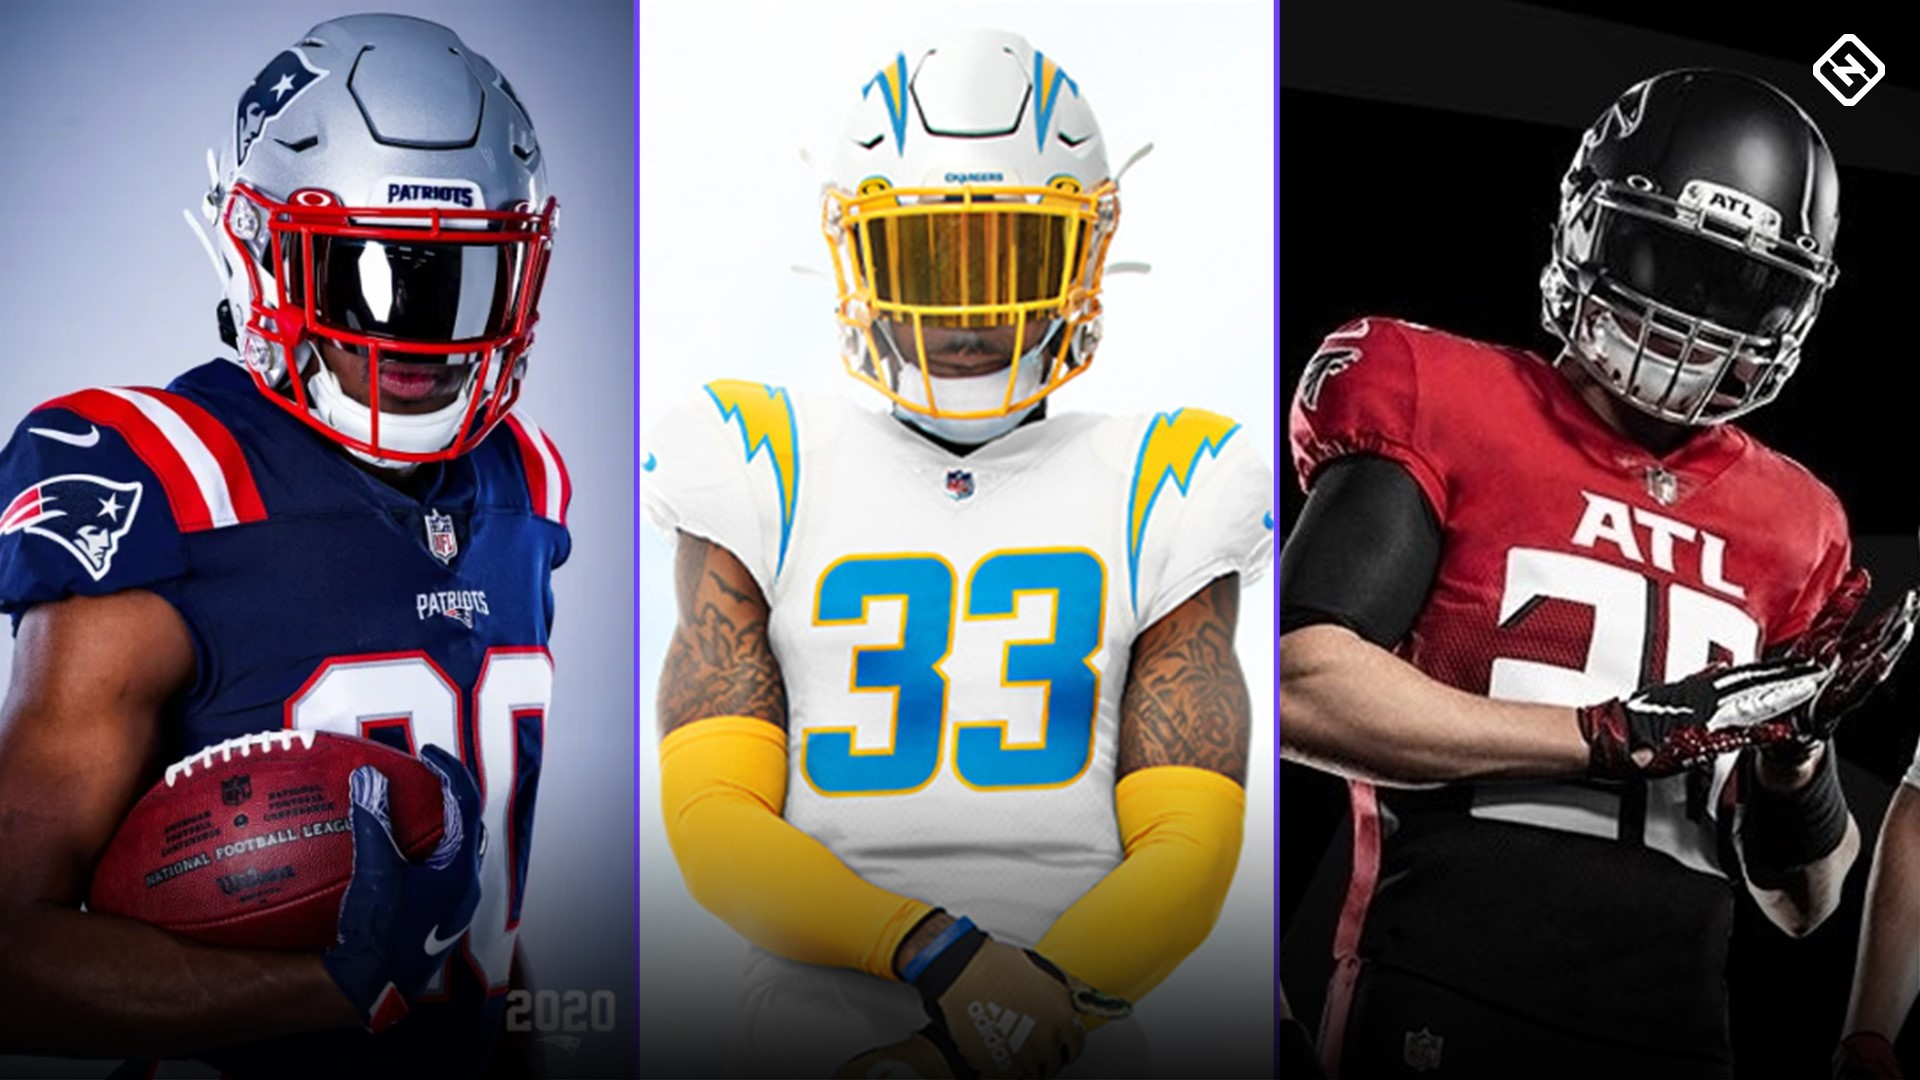 Nfl Uniform Rankings Patriots Chargers Rise With New Looks For 2020 Falcons Fall Sporting News